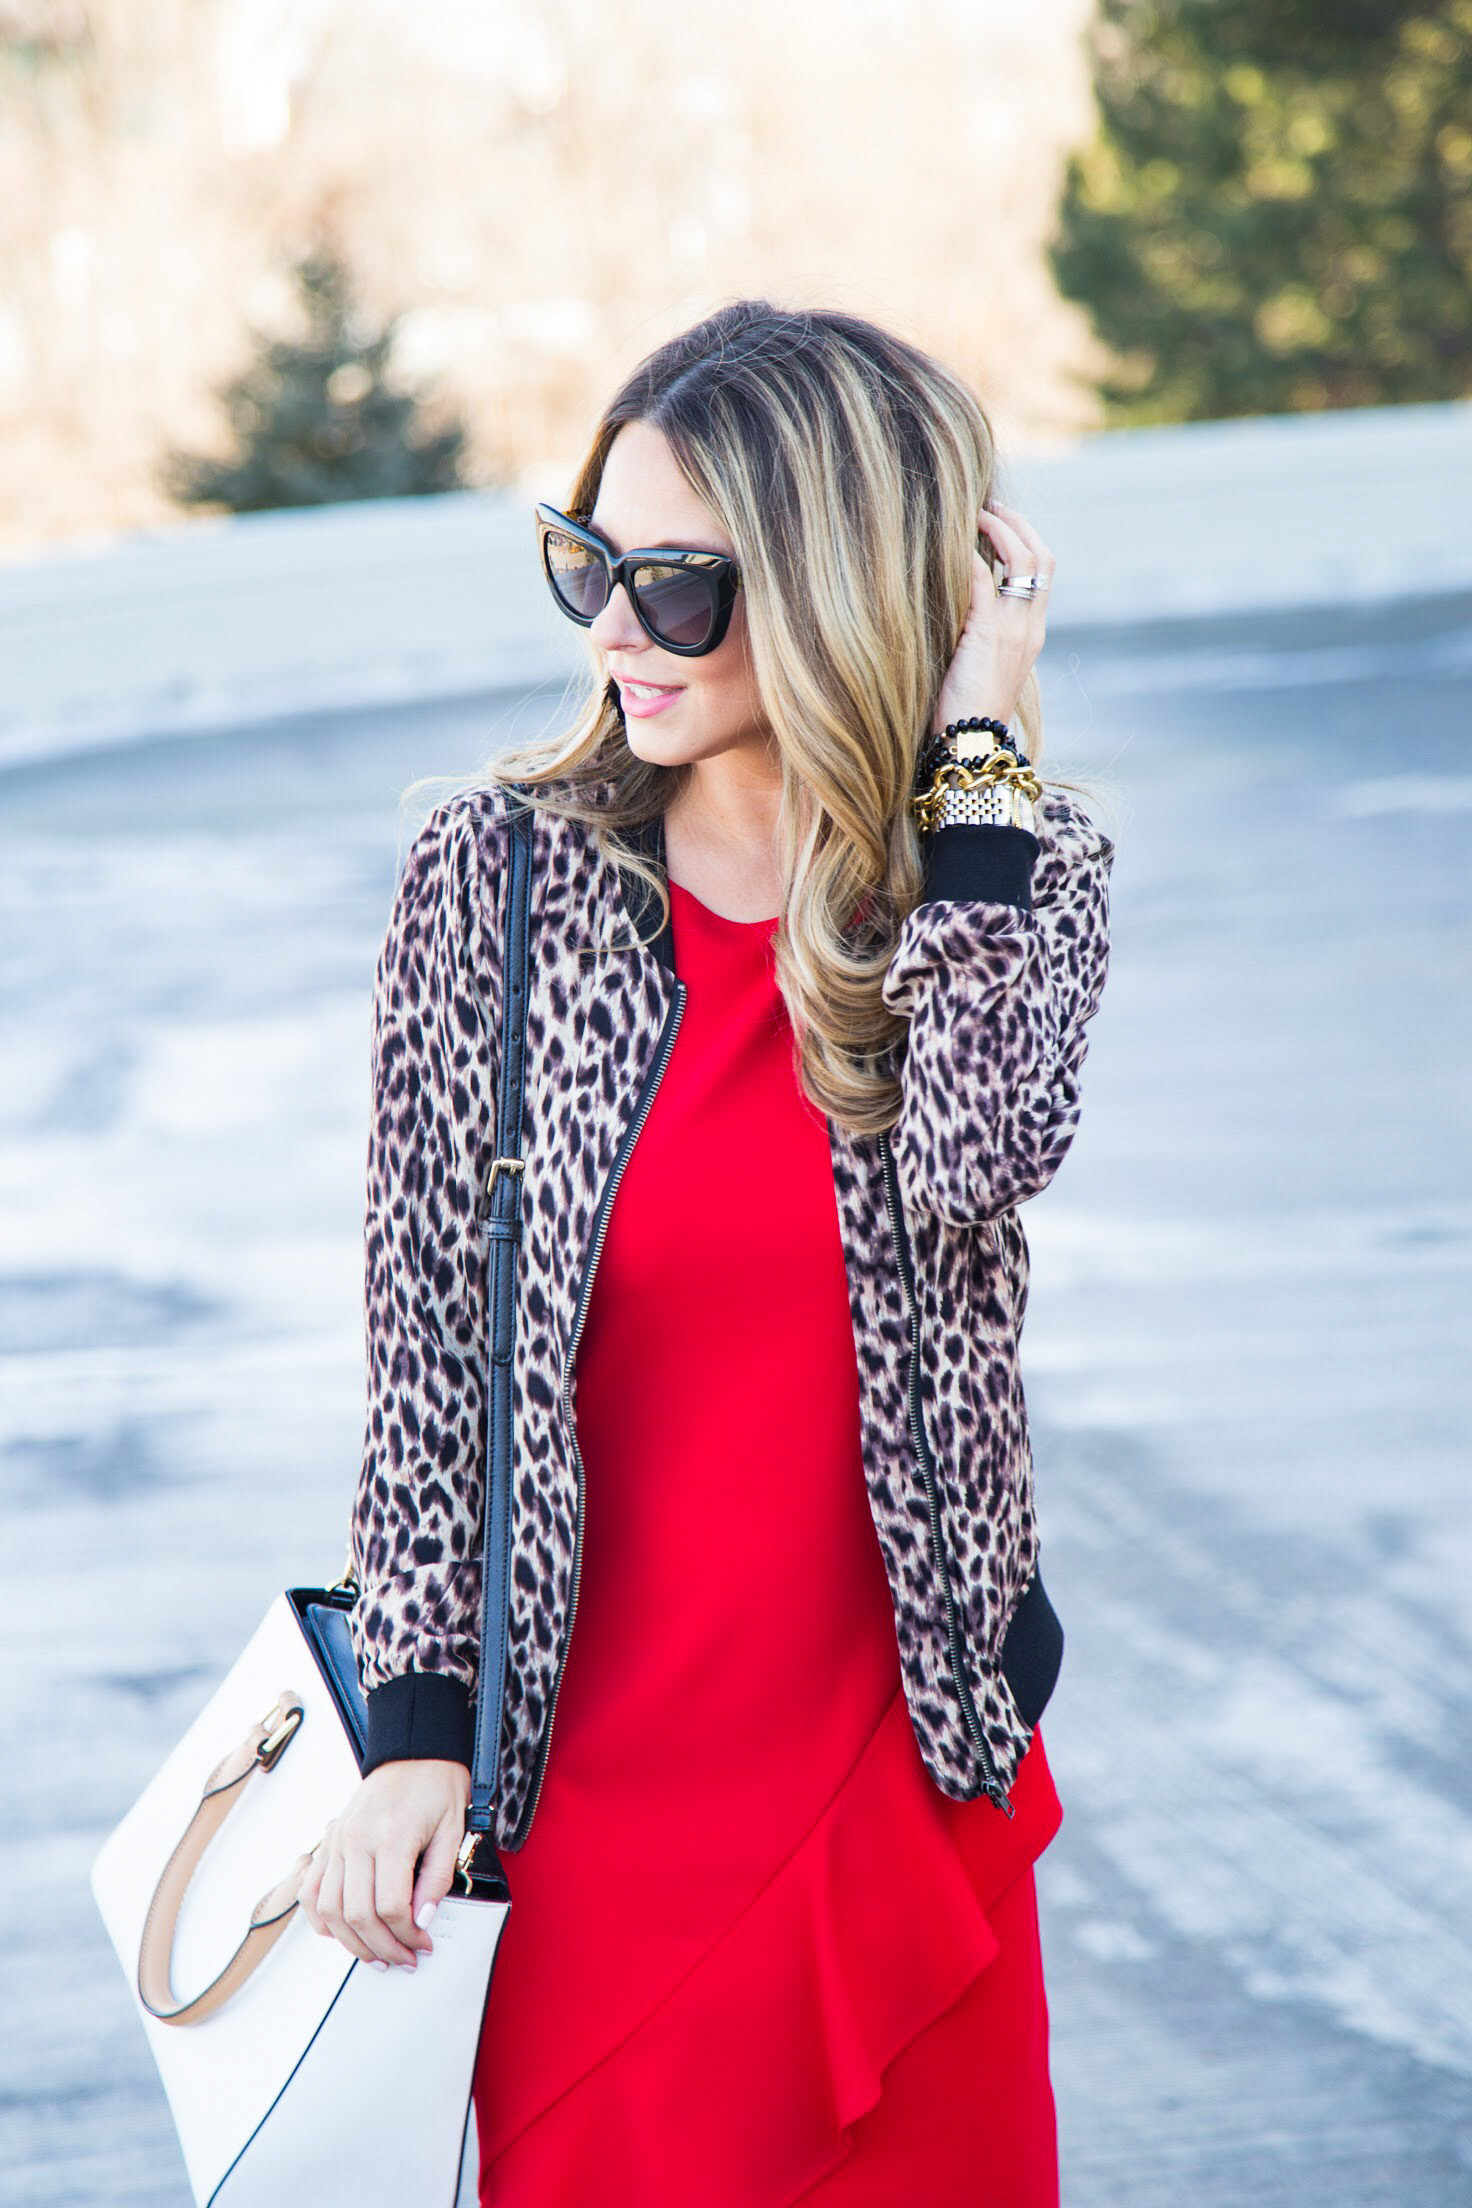 red dress and leopard jacket